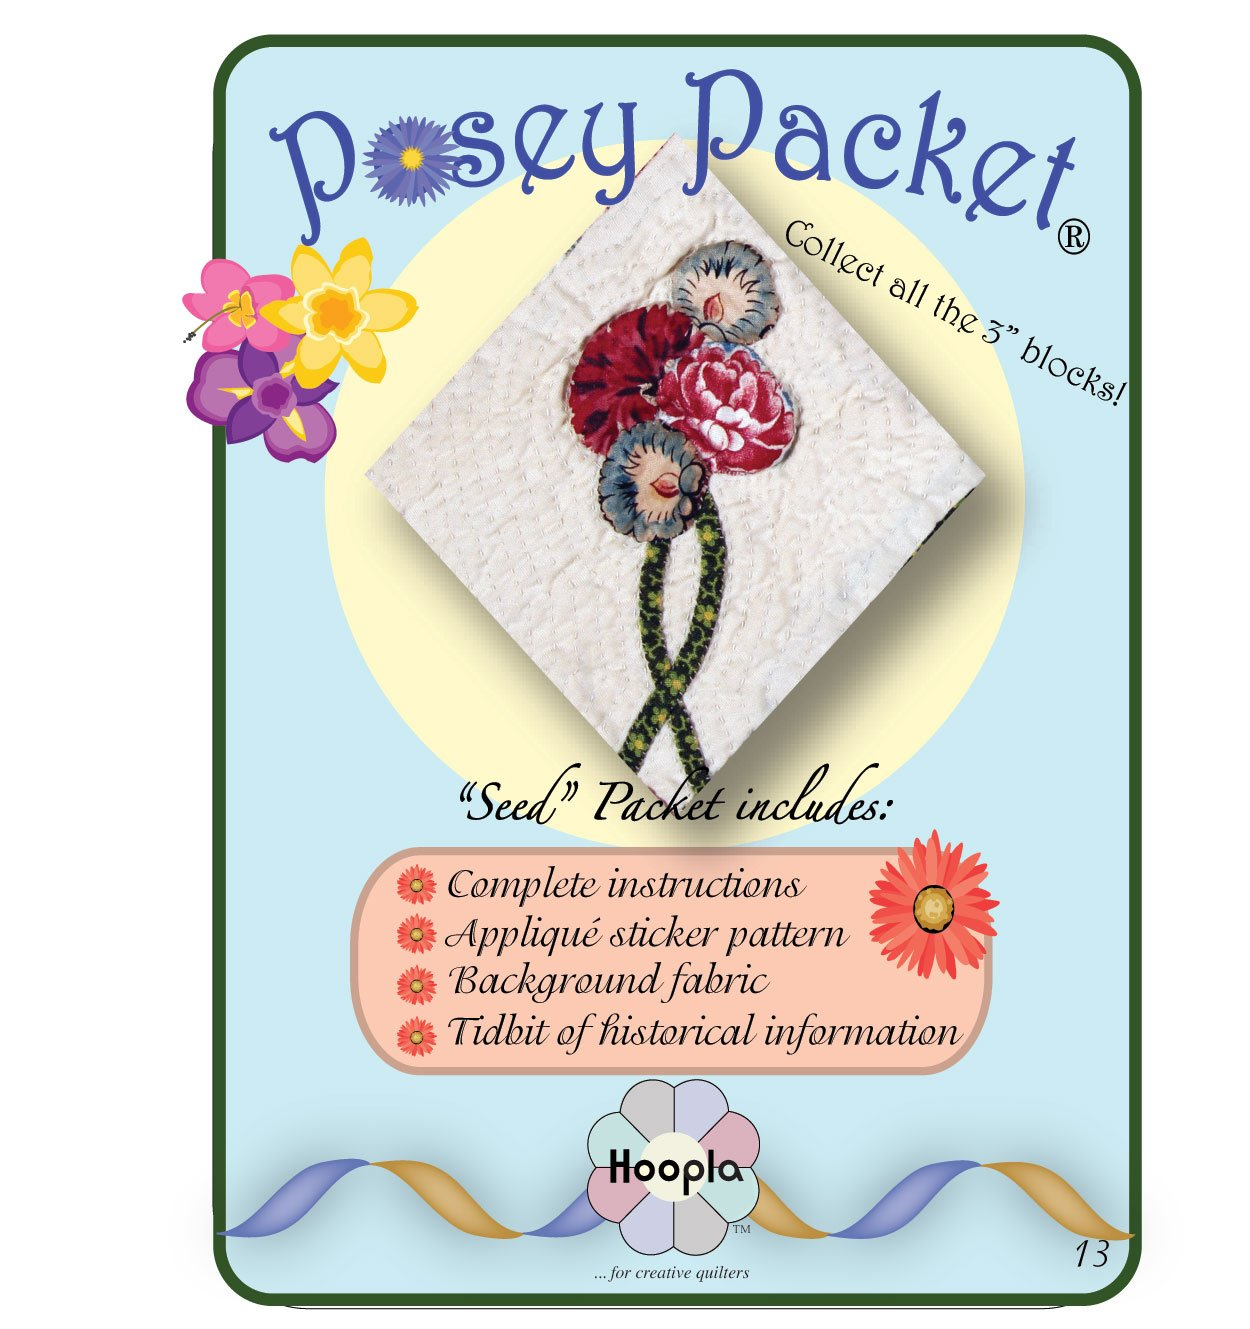 Posey Packet 13